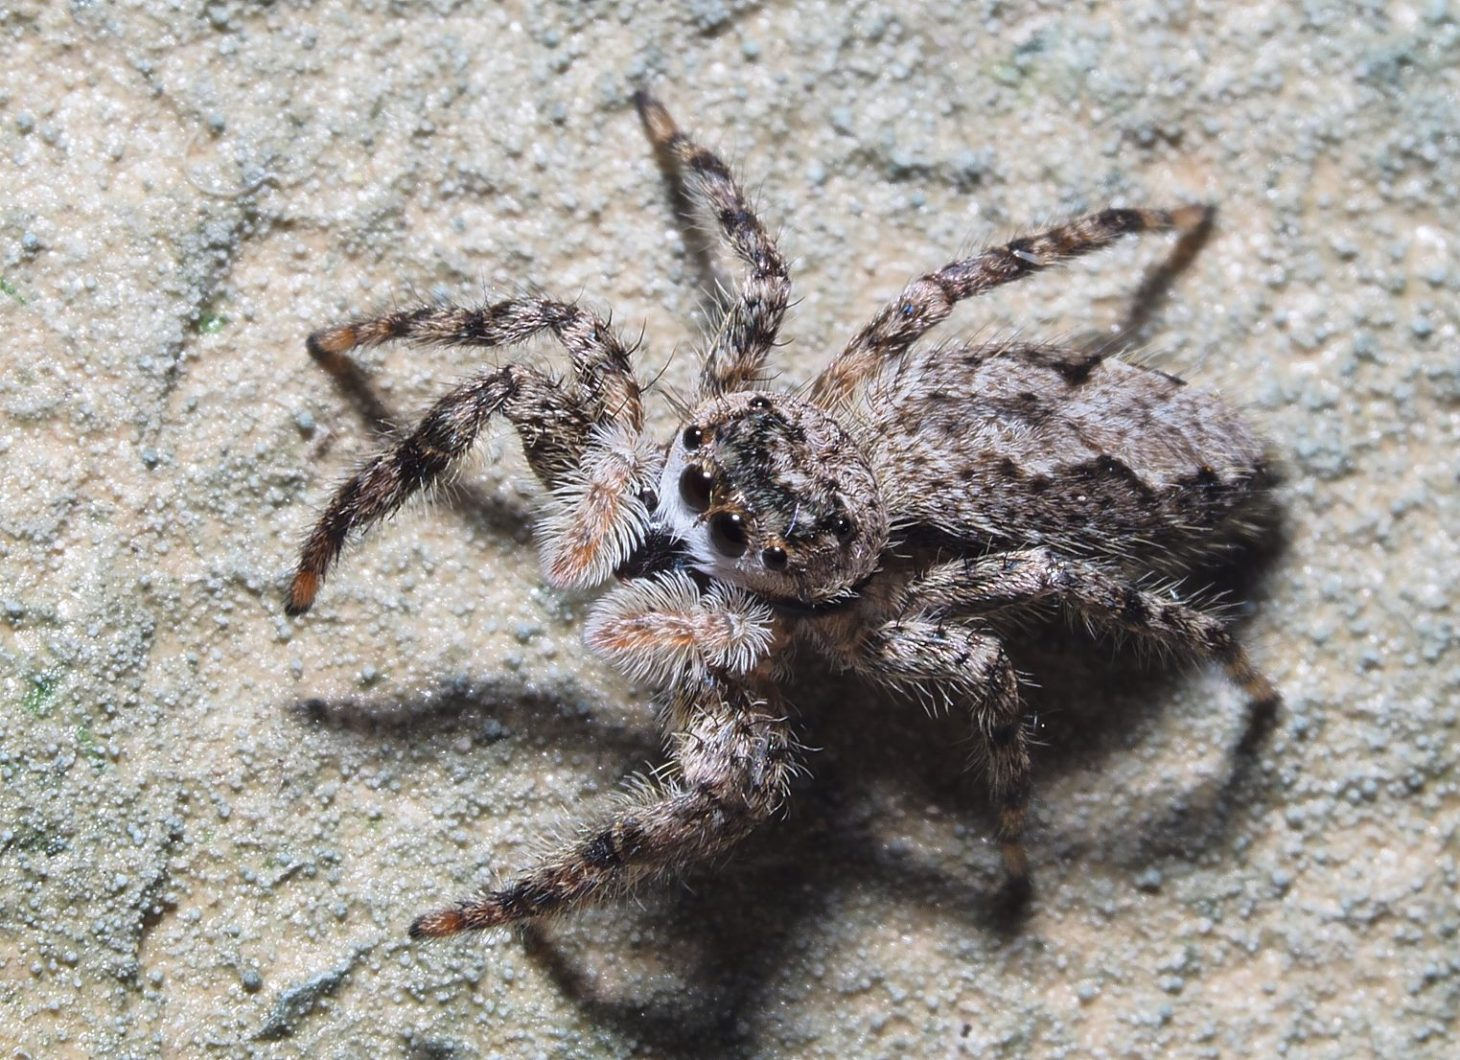 Halloween Jumping Spider at the Optometrist's ... Photo by Thomas Peace c. 2021